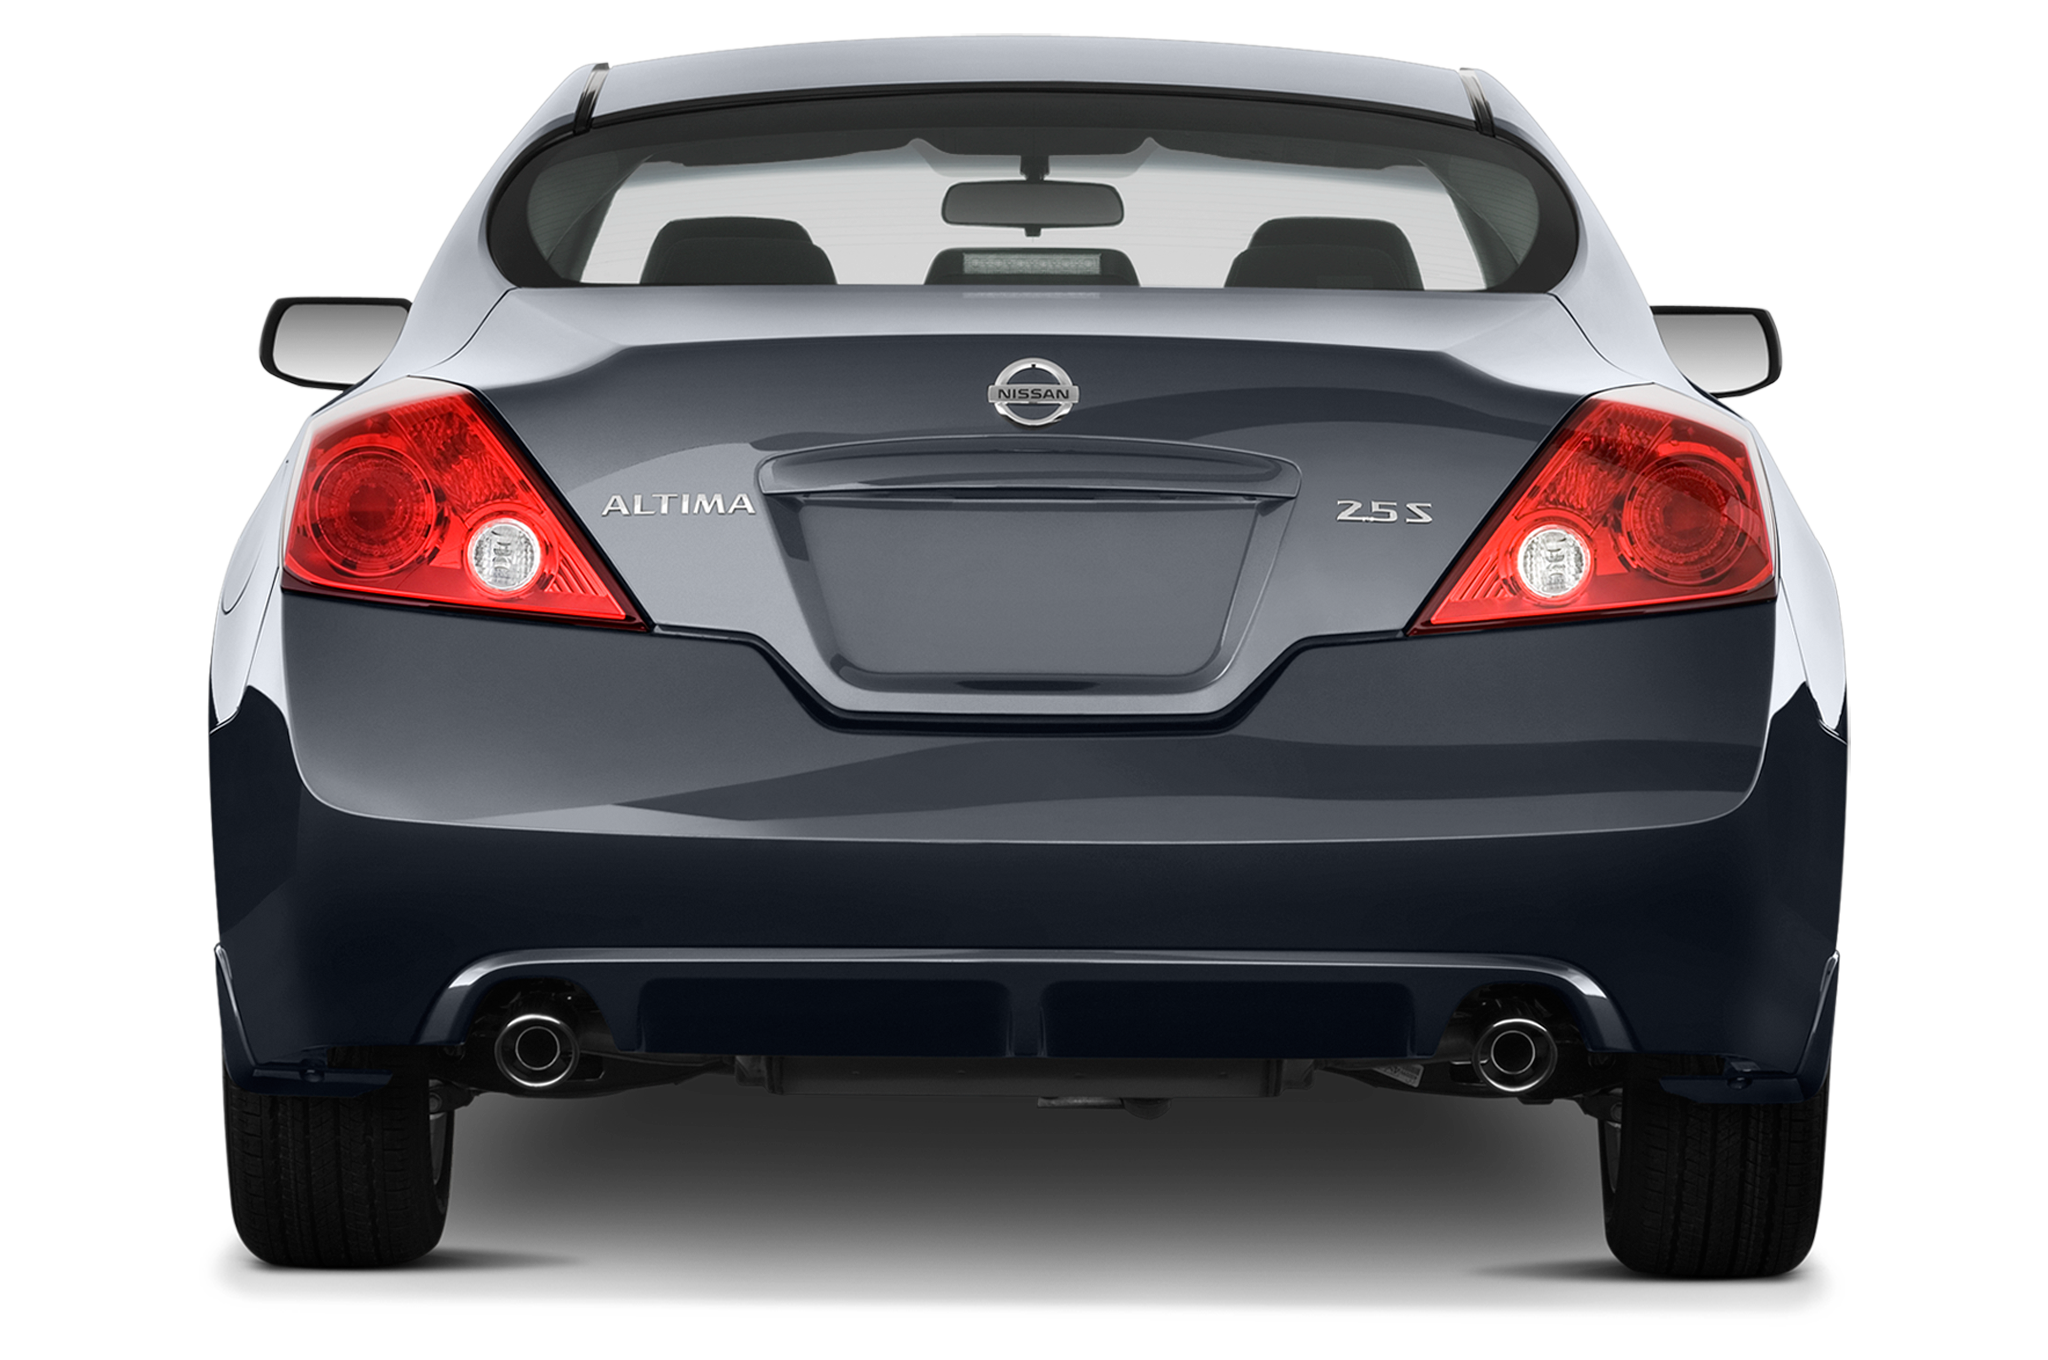 2010 Nissan Altima Coupe 3.5 SR - Driven - Automobile Magazine